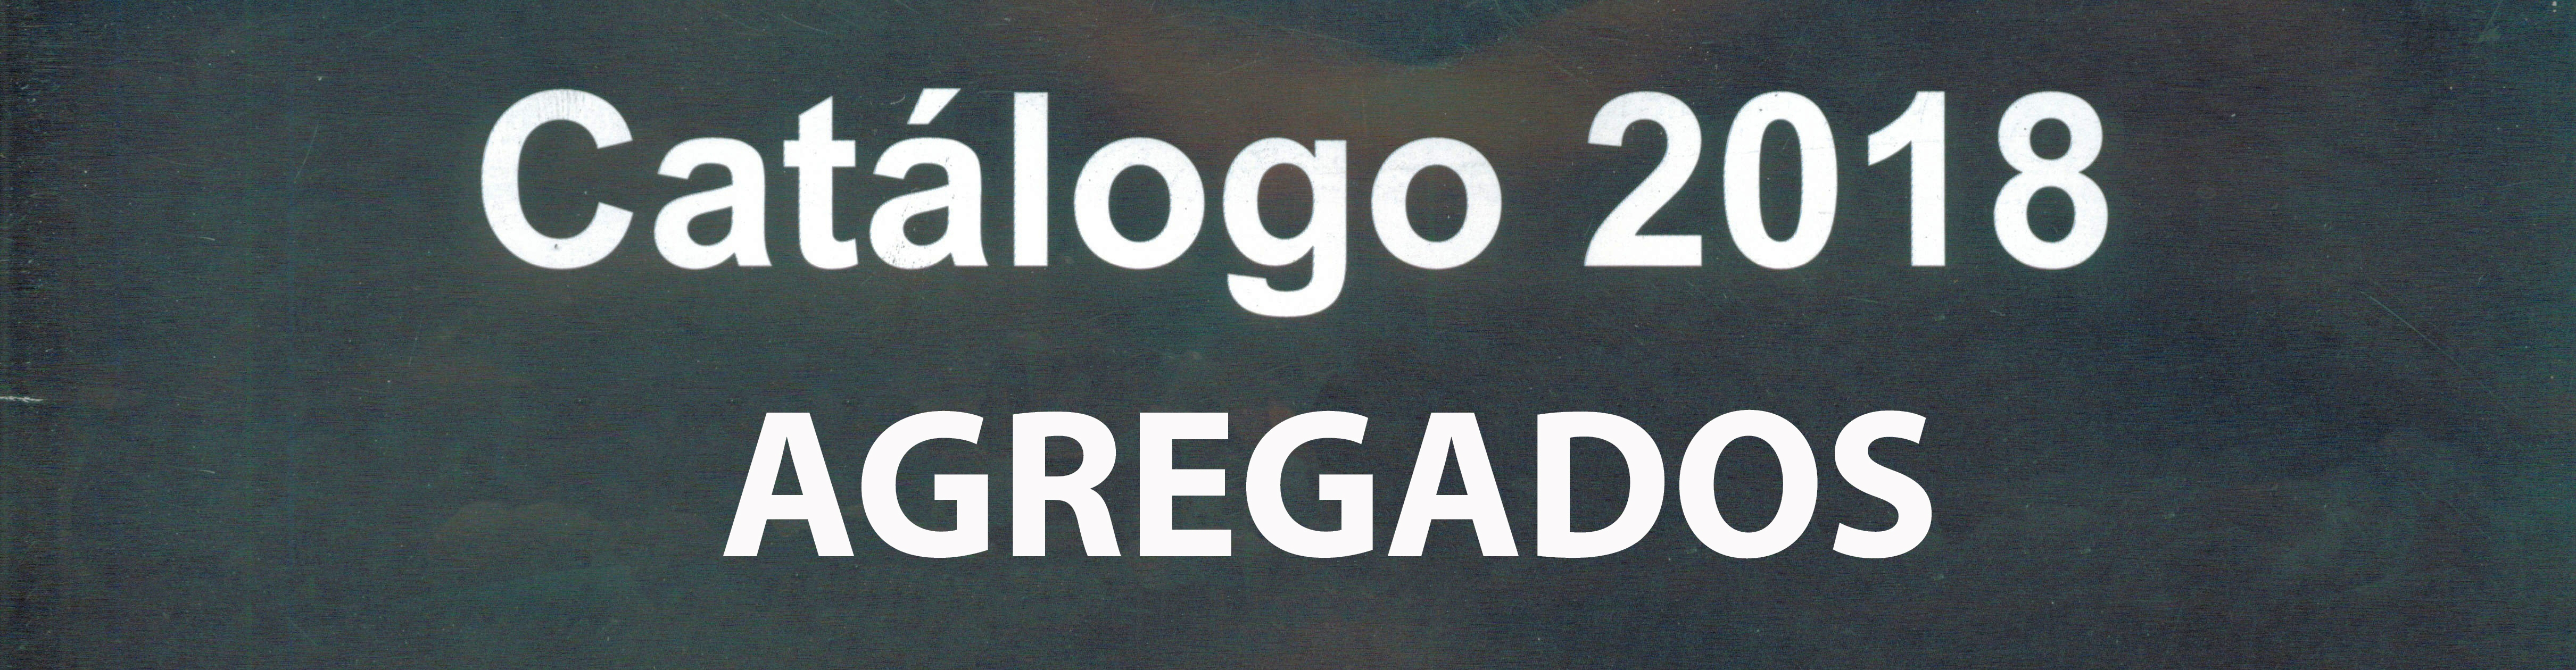 AGREGADOS CATALOGO 2018 (ENERO 2019) (1)